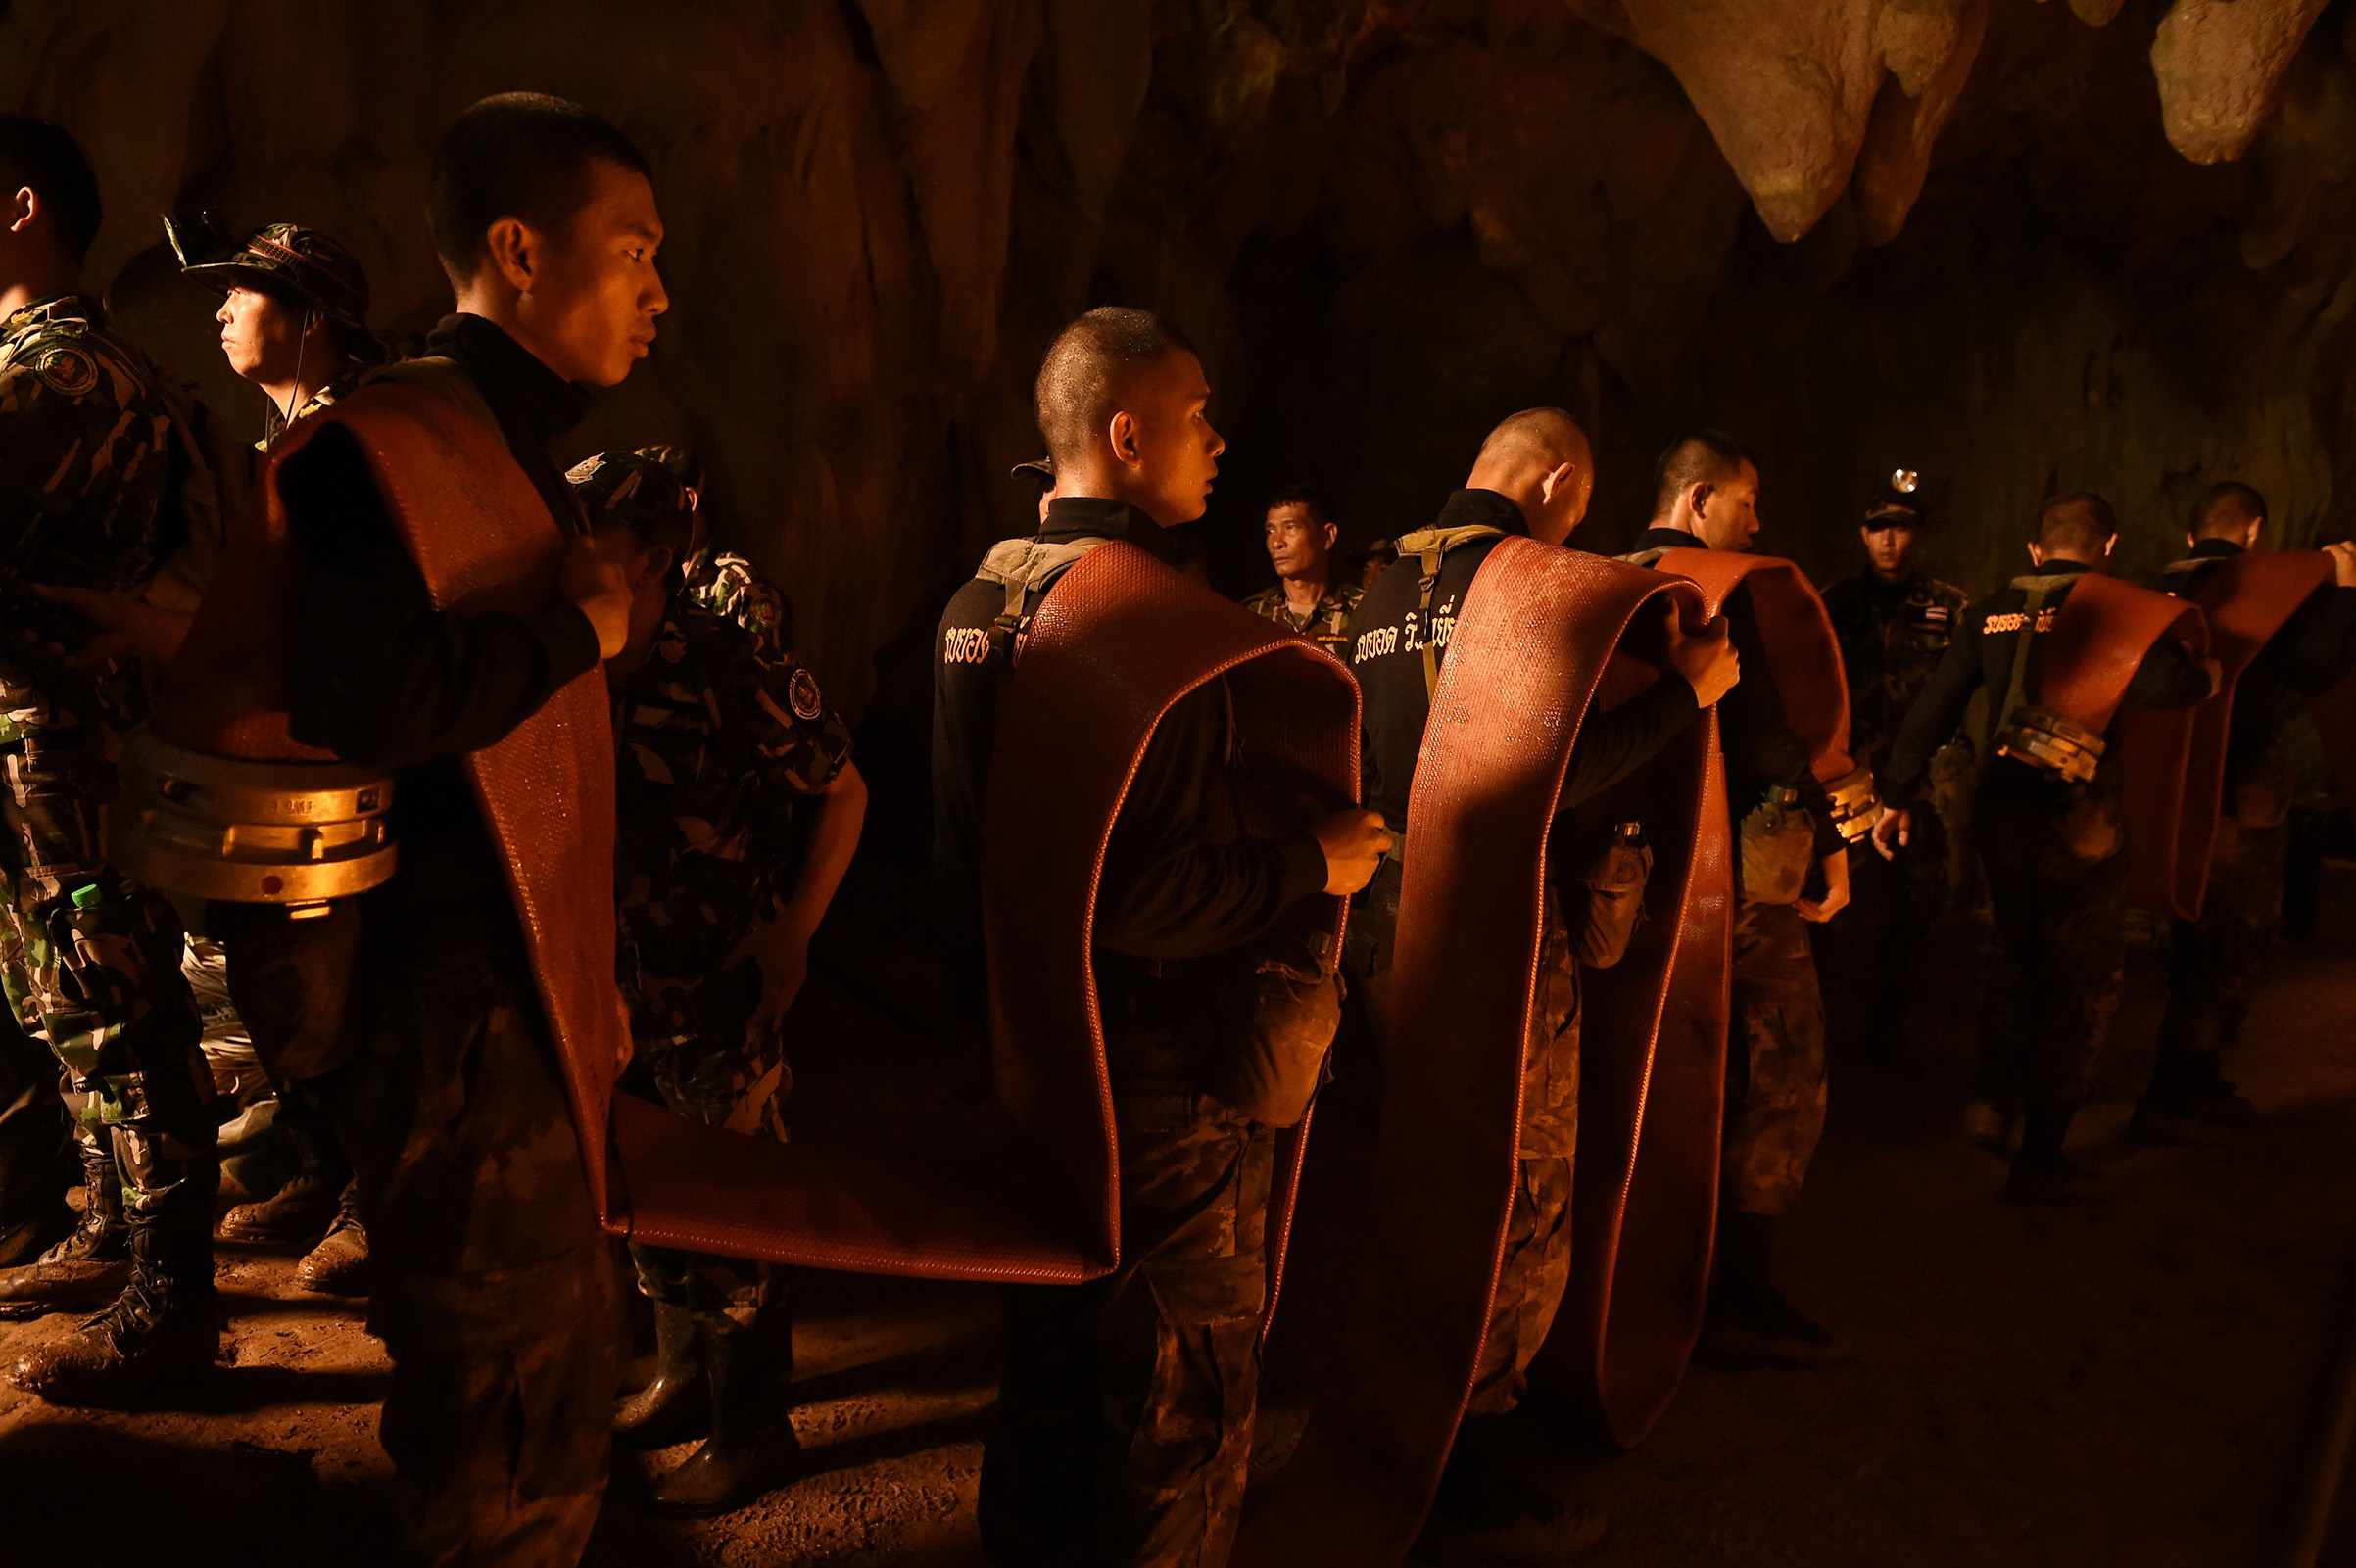 Thai soldiers carry hose deep into the Tham Luang cave to pump out water at the Khun Nam Nang Non Forest Park in Chiang Rai on June 27, 2018 during a rescue operation for a missing children's football team and their coach.